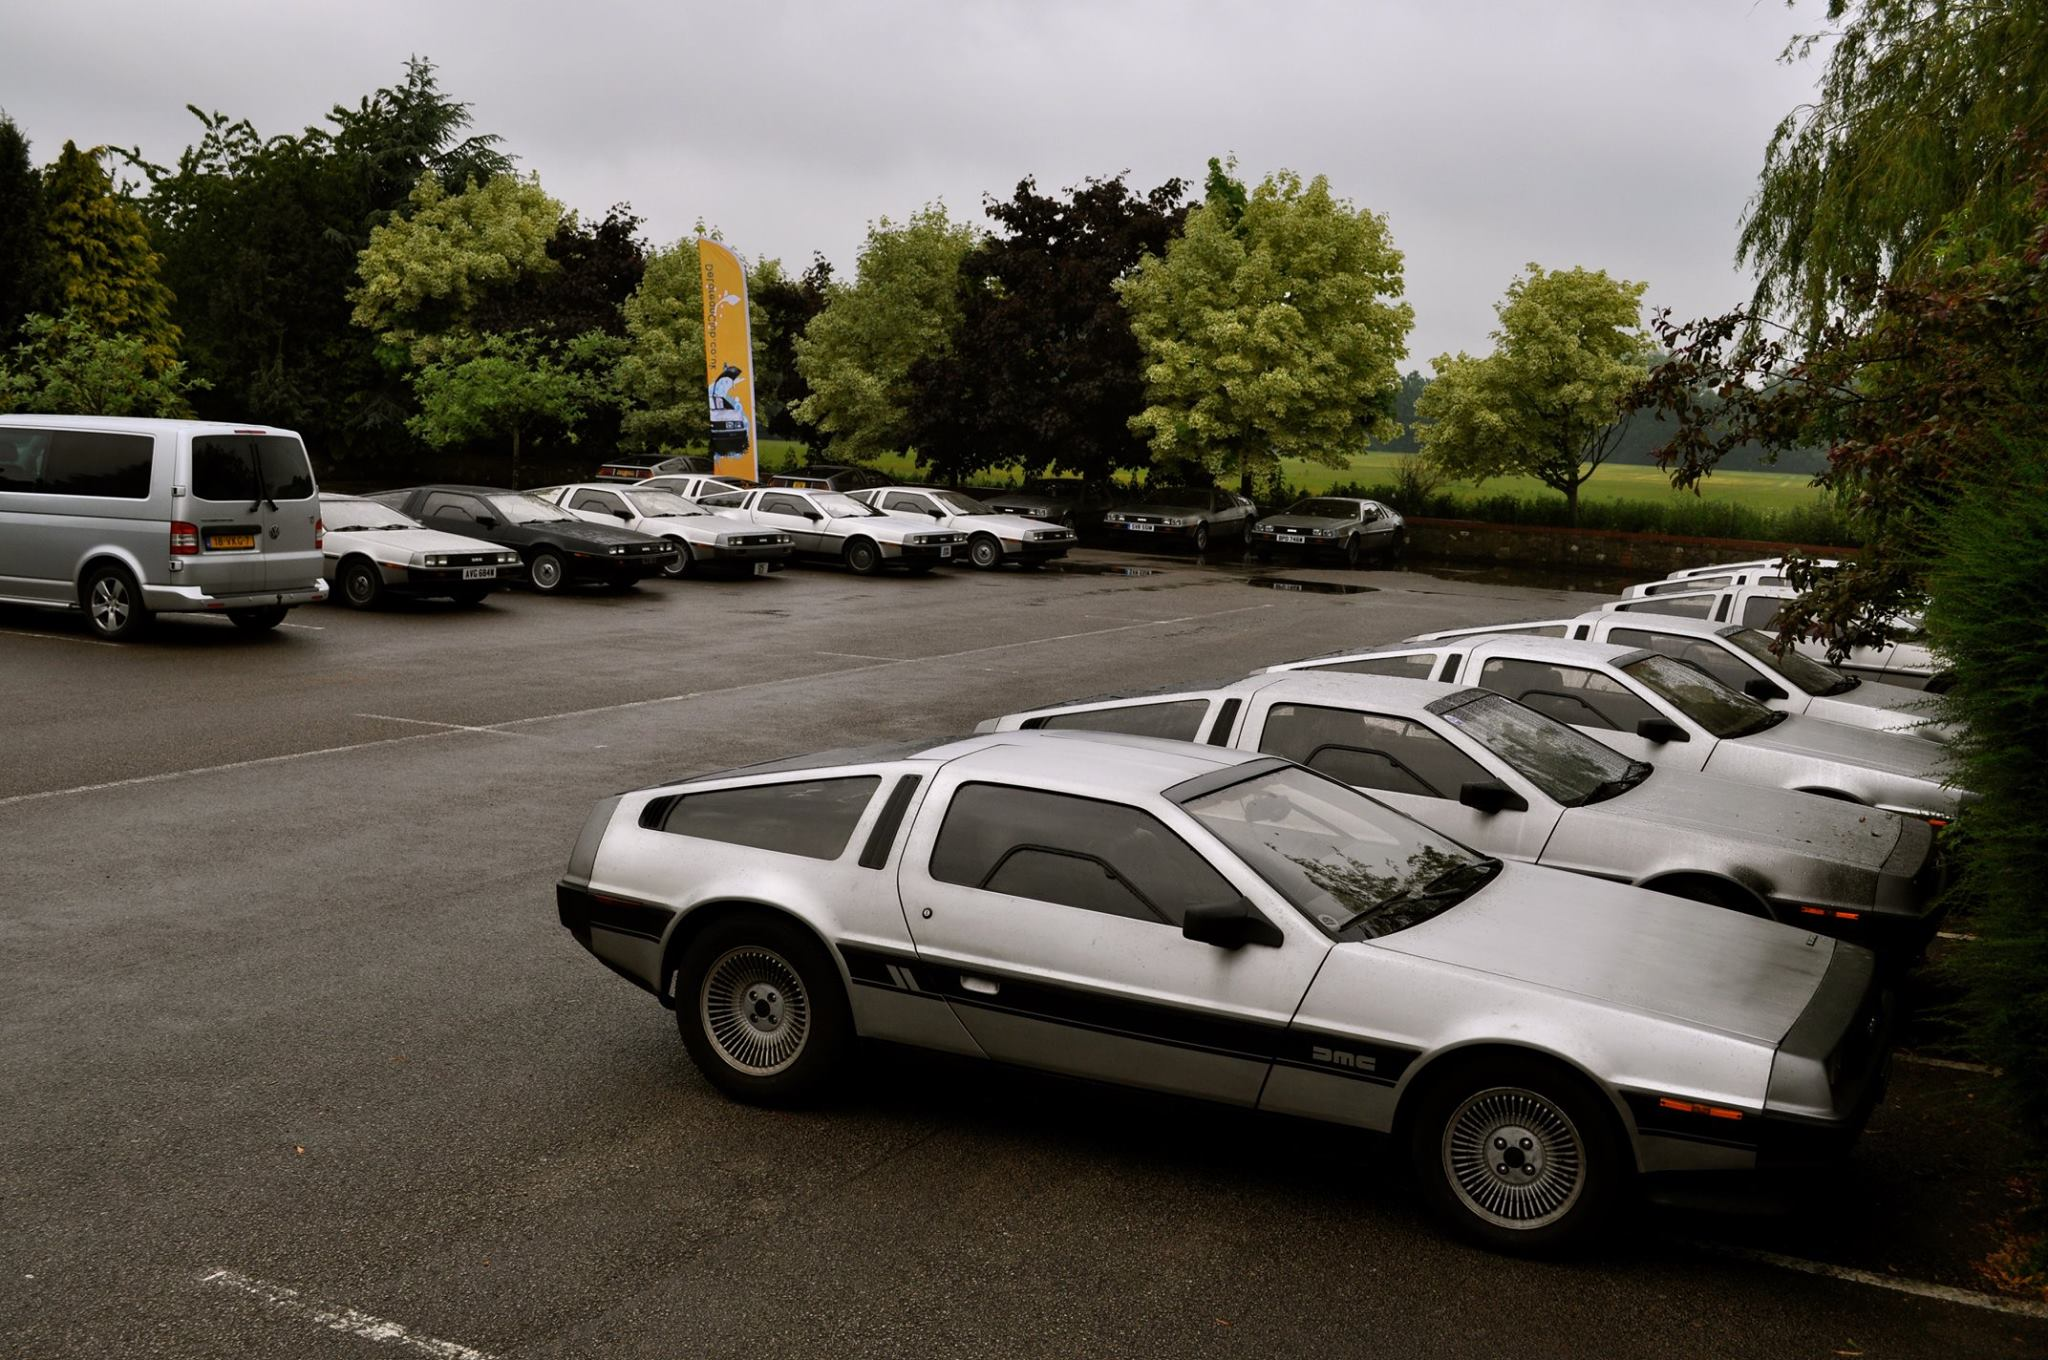 DeLorean EuroTec event 2015